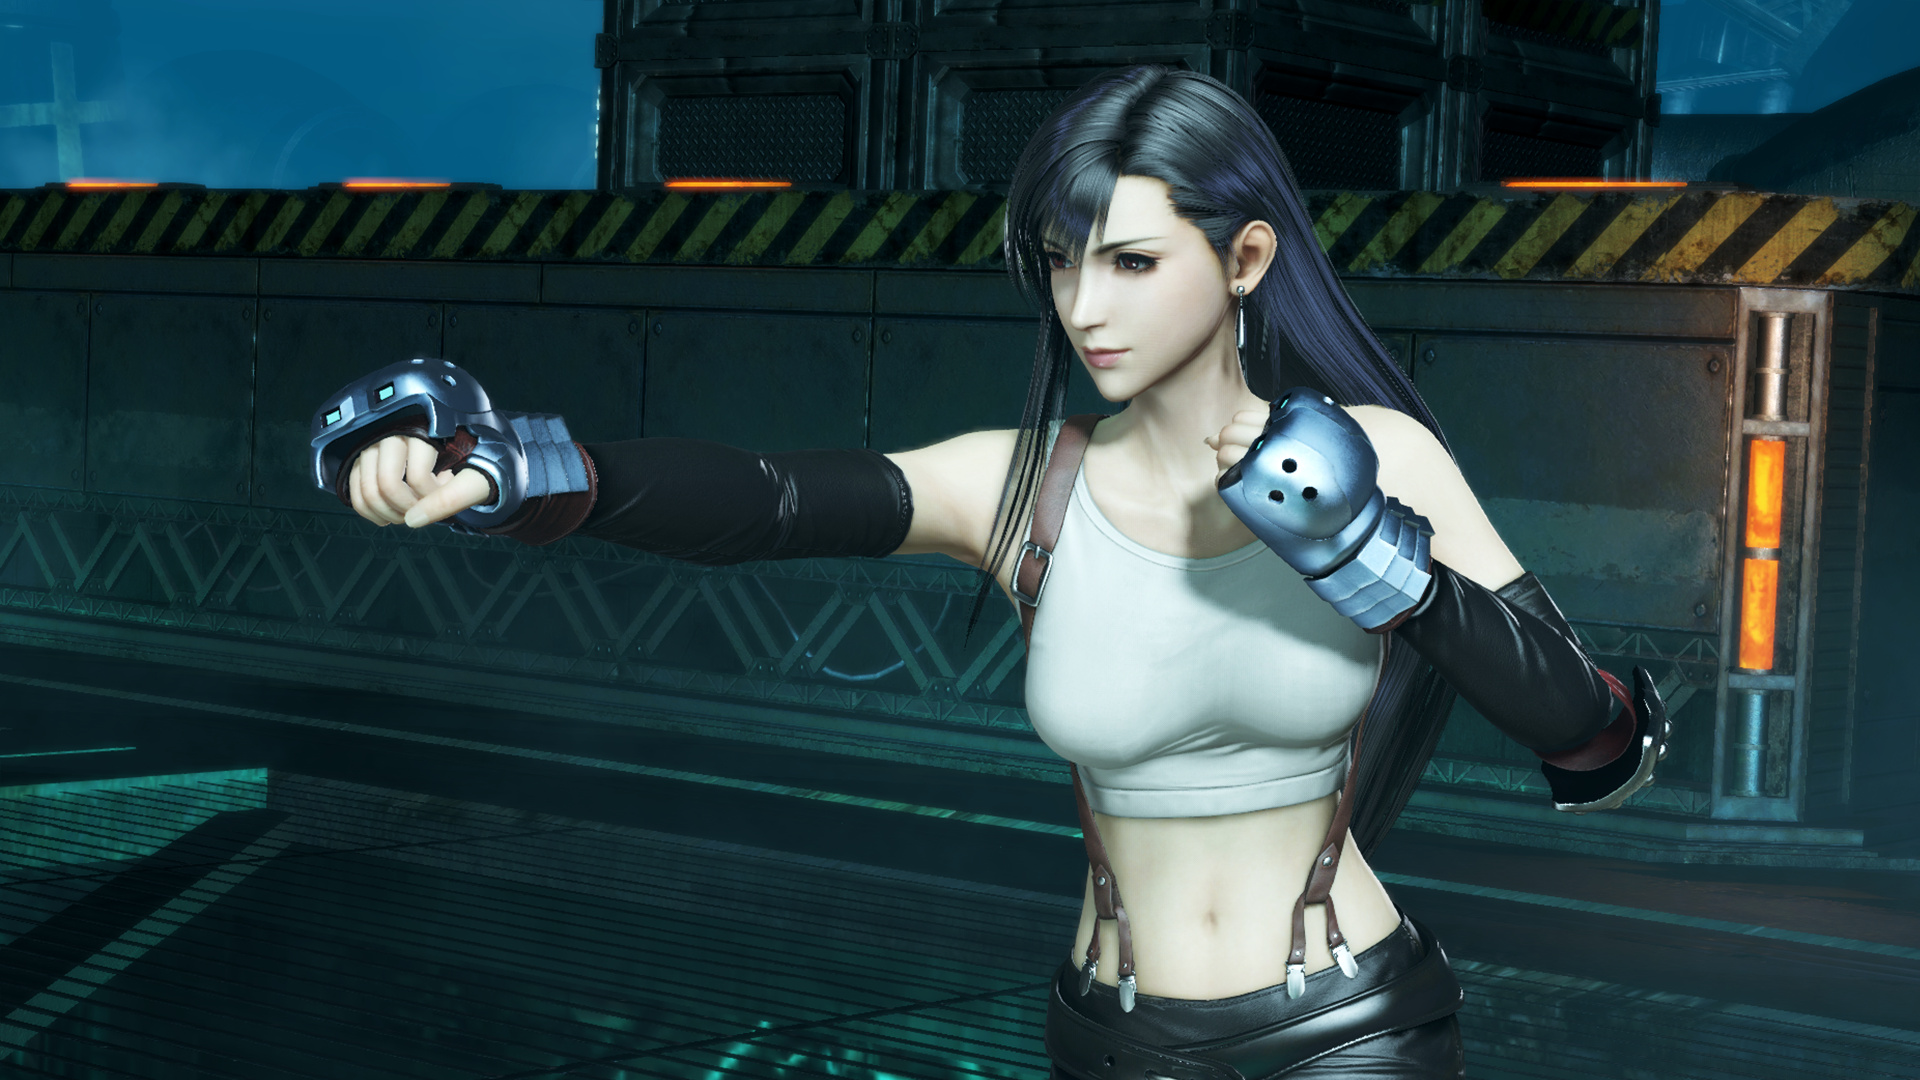 Pictures Of Final Fantasy Vii S Tifa Added To Dissidia Nt Roster 3 6